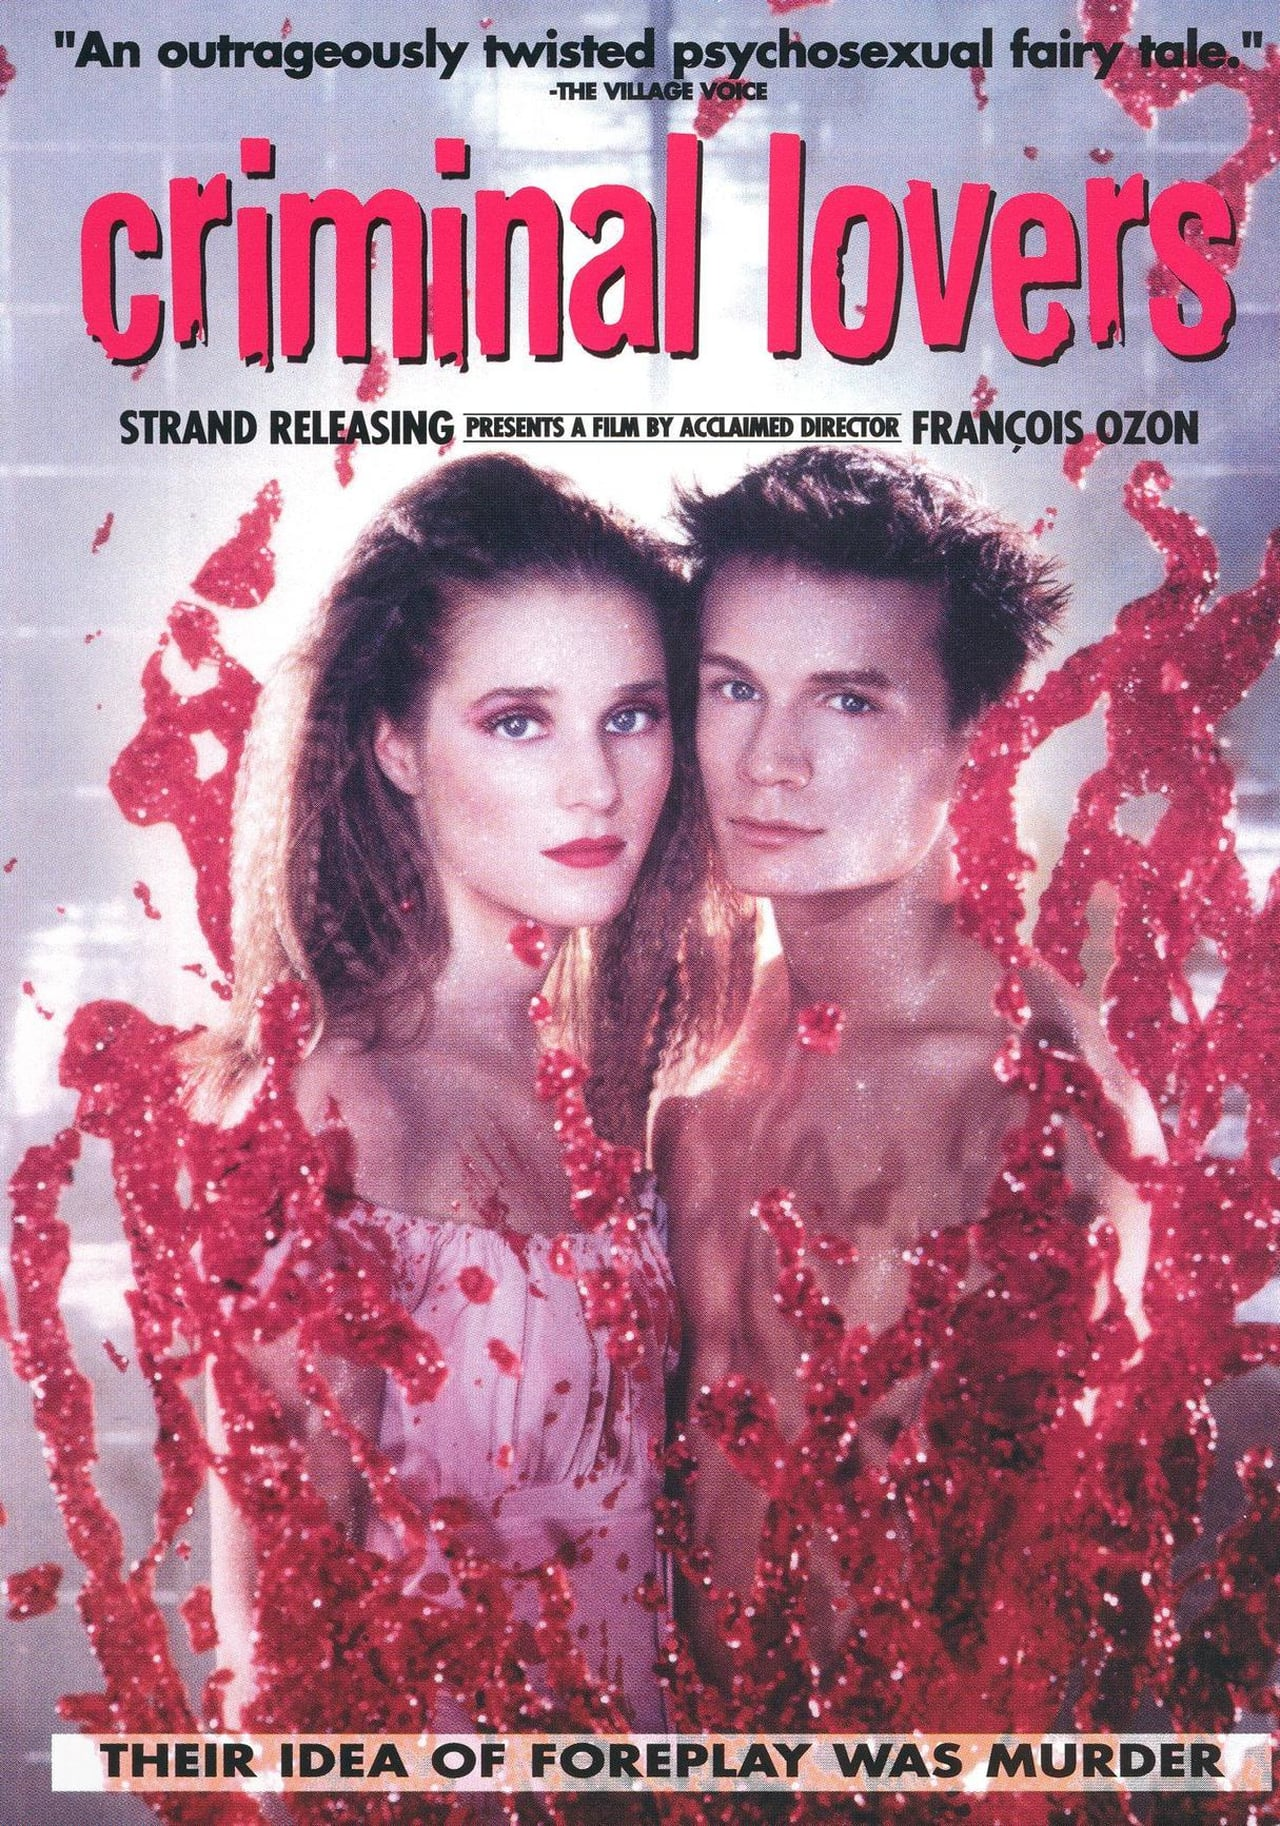 Les amants criminels hd on soap2day